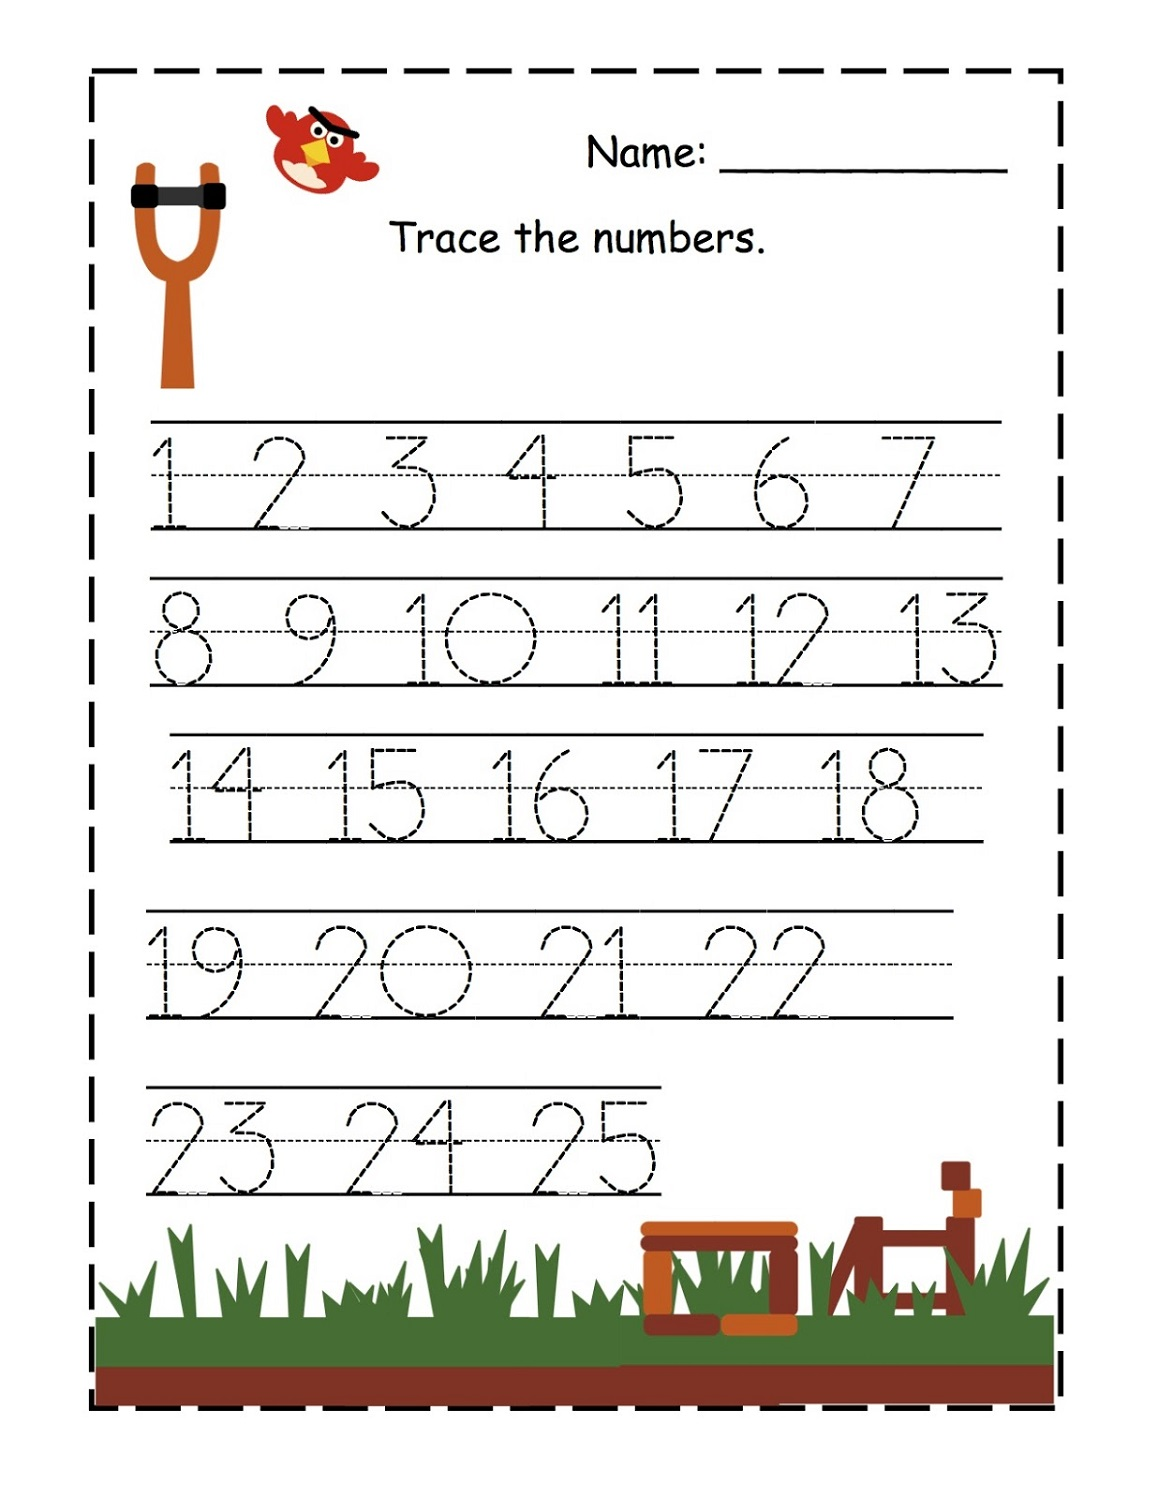 trace-number-worksheets-angry-birds